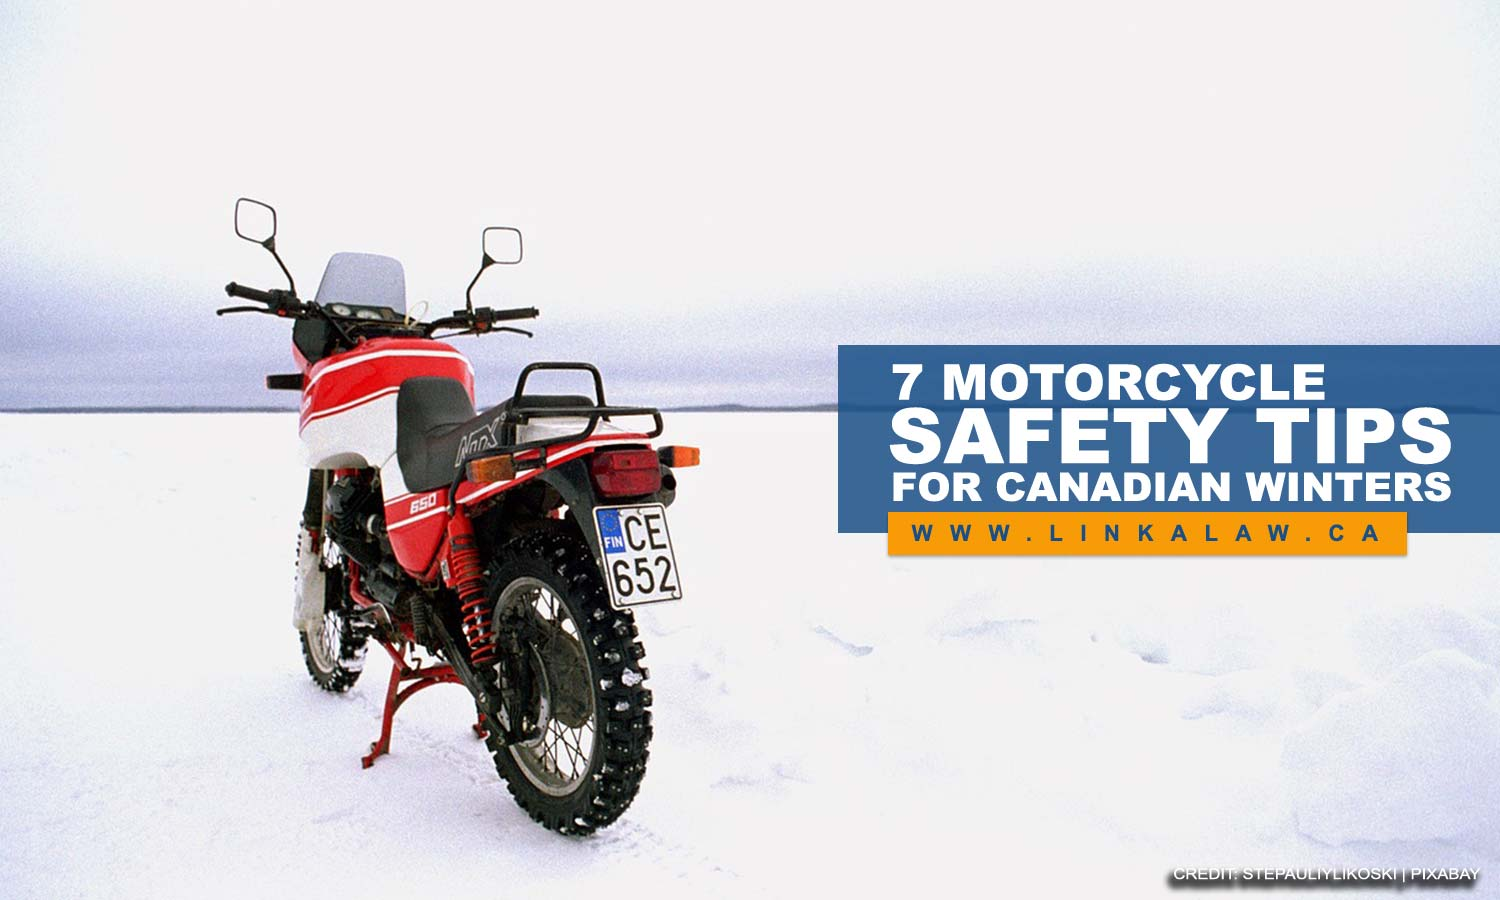 7 Motorcycle Safety Tips for Canadian Winters